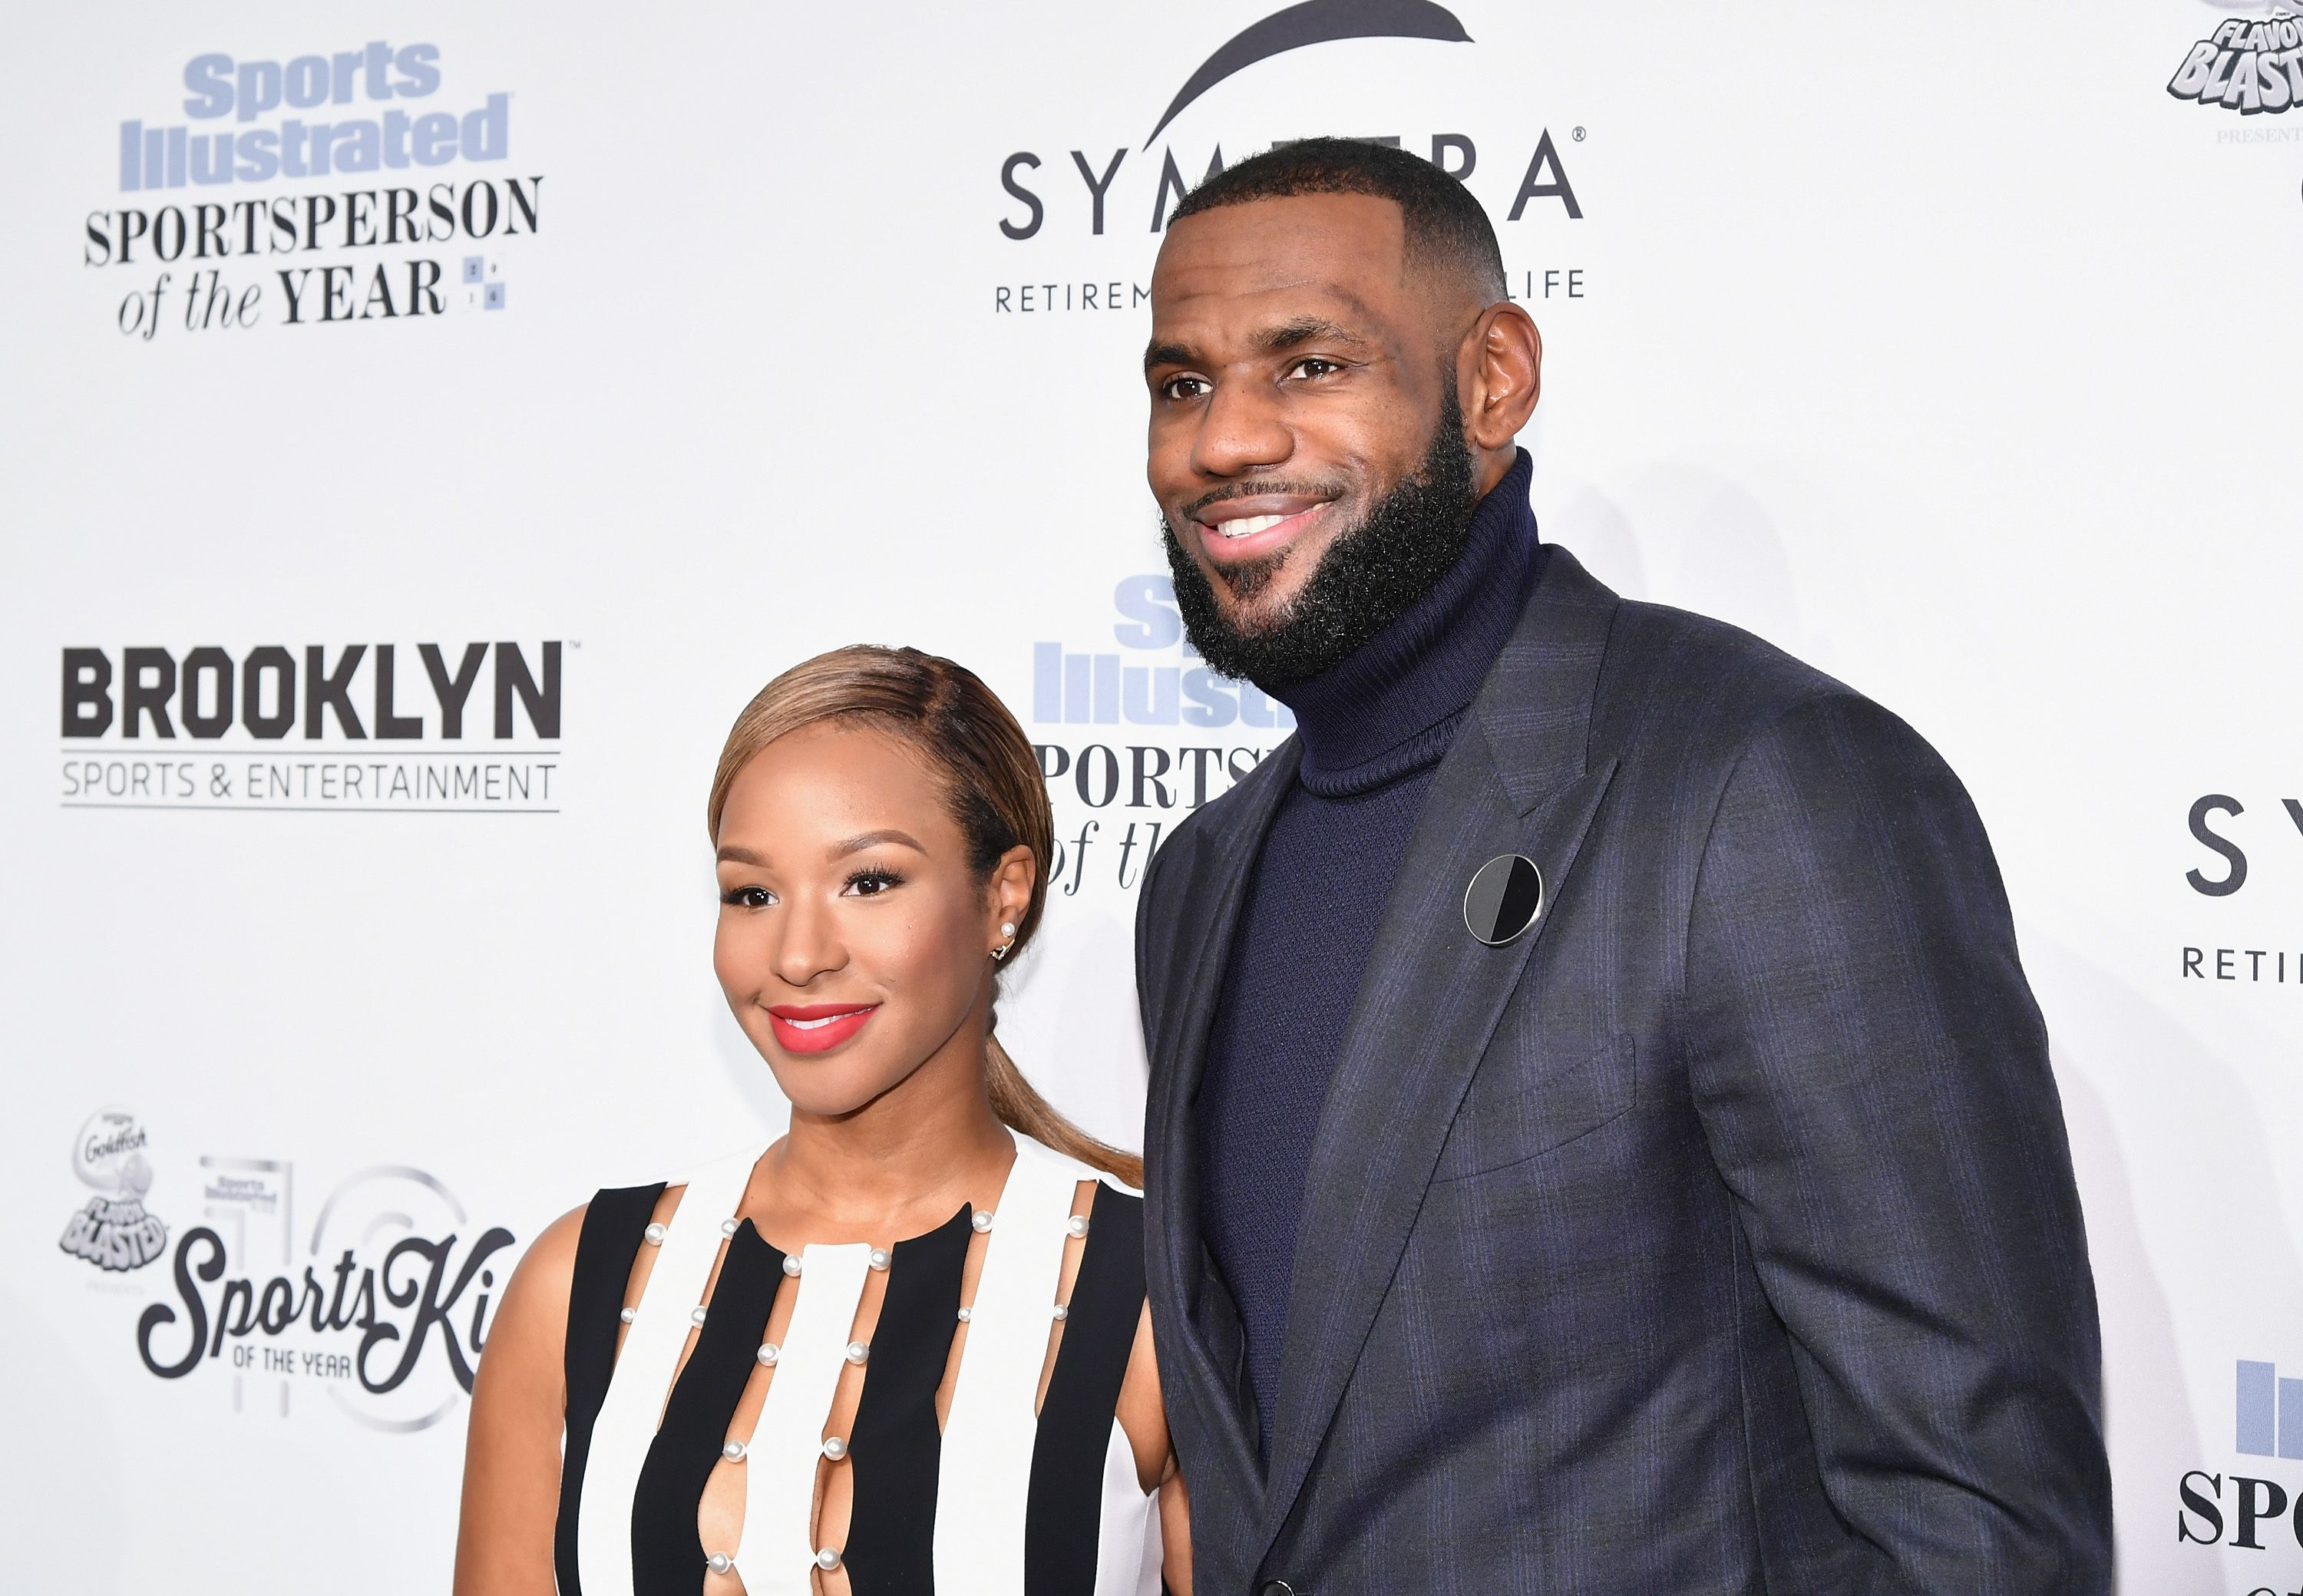 Savannah Brinson and Basketball Player Lebron James at the Sports Illustrated Sportsperson of the Year Ceremony 2016 at Barclays Center of Brooklyn on December 12, 2016 in New York City. | Photo: Getty Images